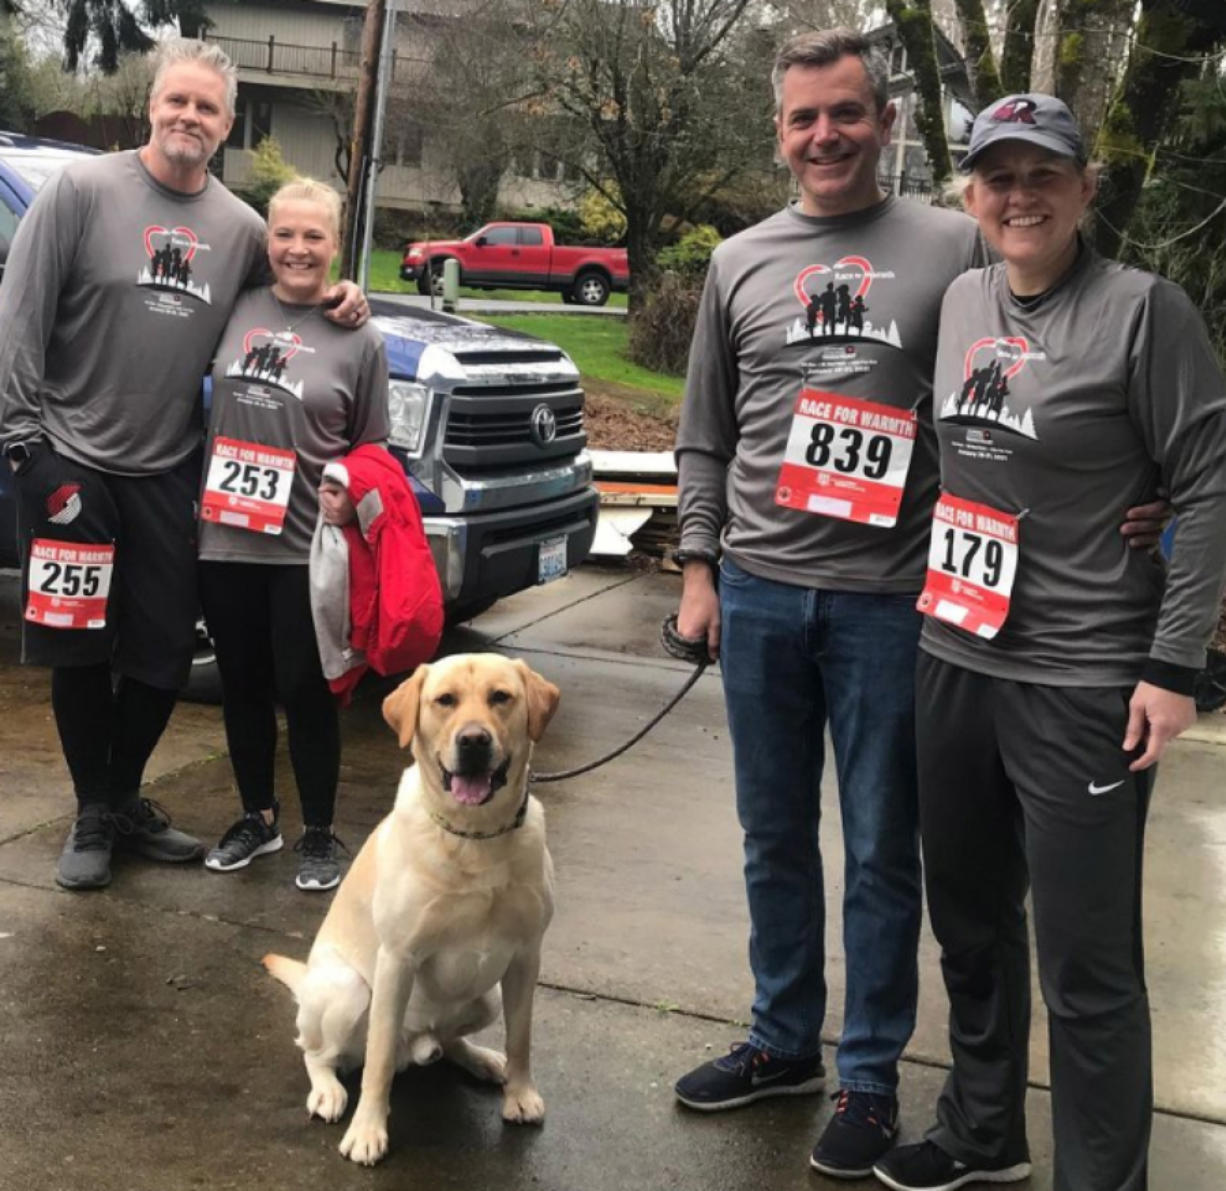 CLARK COUNTY: Clark Public Utilities' Race for Warmth featured 930 participants who raced virtually and raised more than $43,000 for Operation Warm Heart. The race took place anytime from Jan.